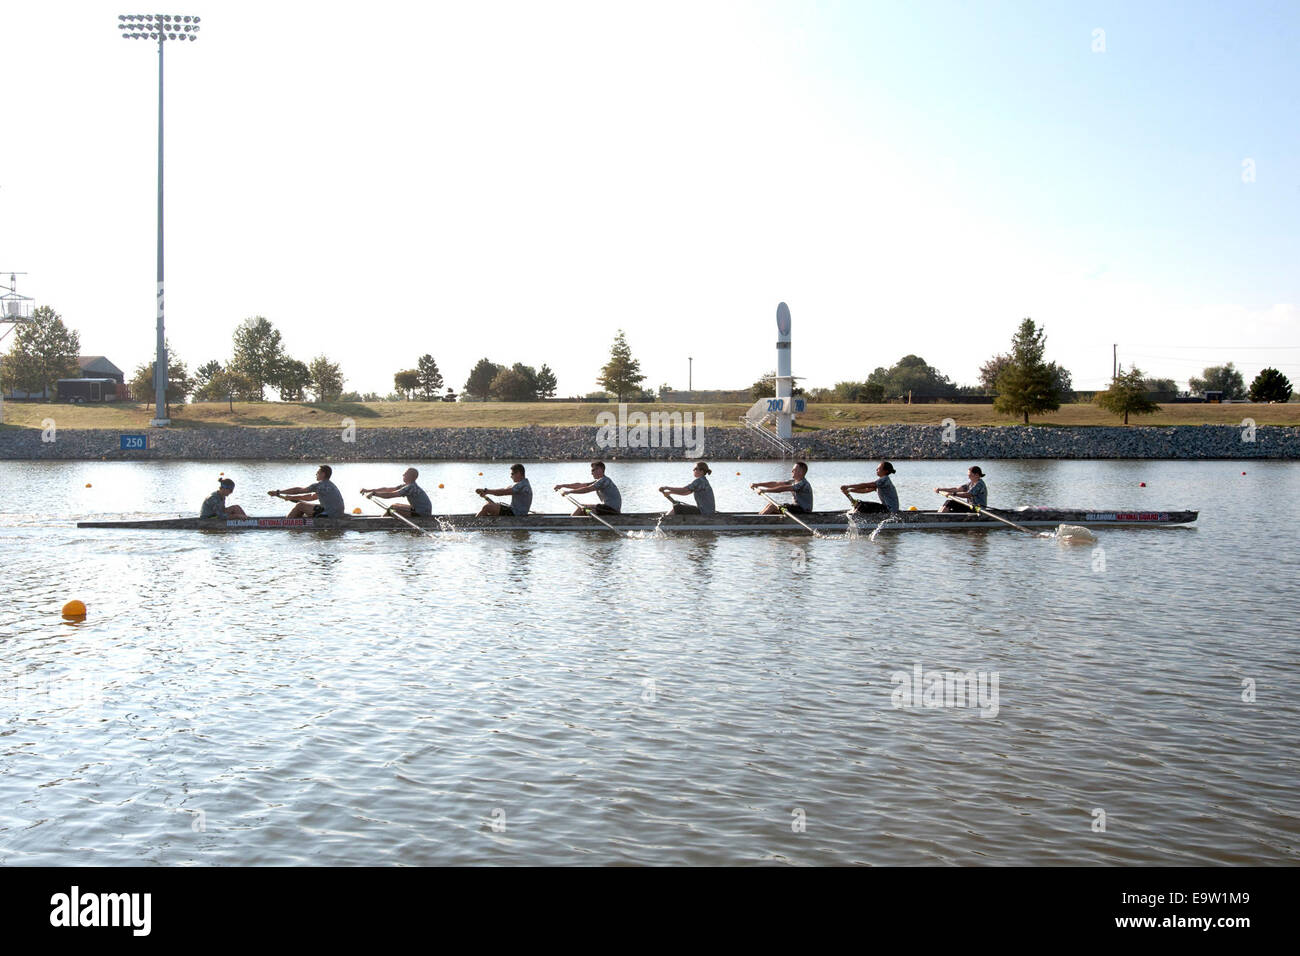 U.S. Soldiers with the Oklahoma Army National Guard rowing team practice rowing on the Oklahoma River Oct. 21, 2014, Stock Photo